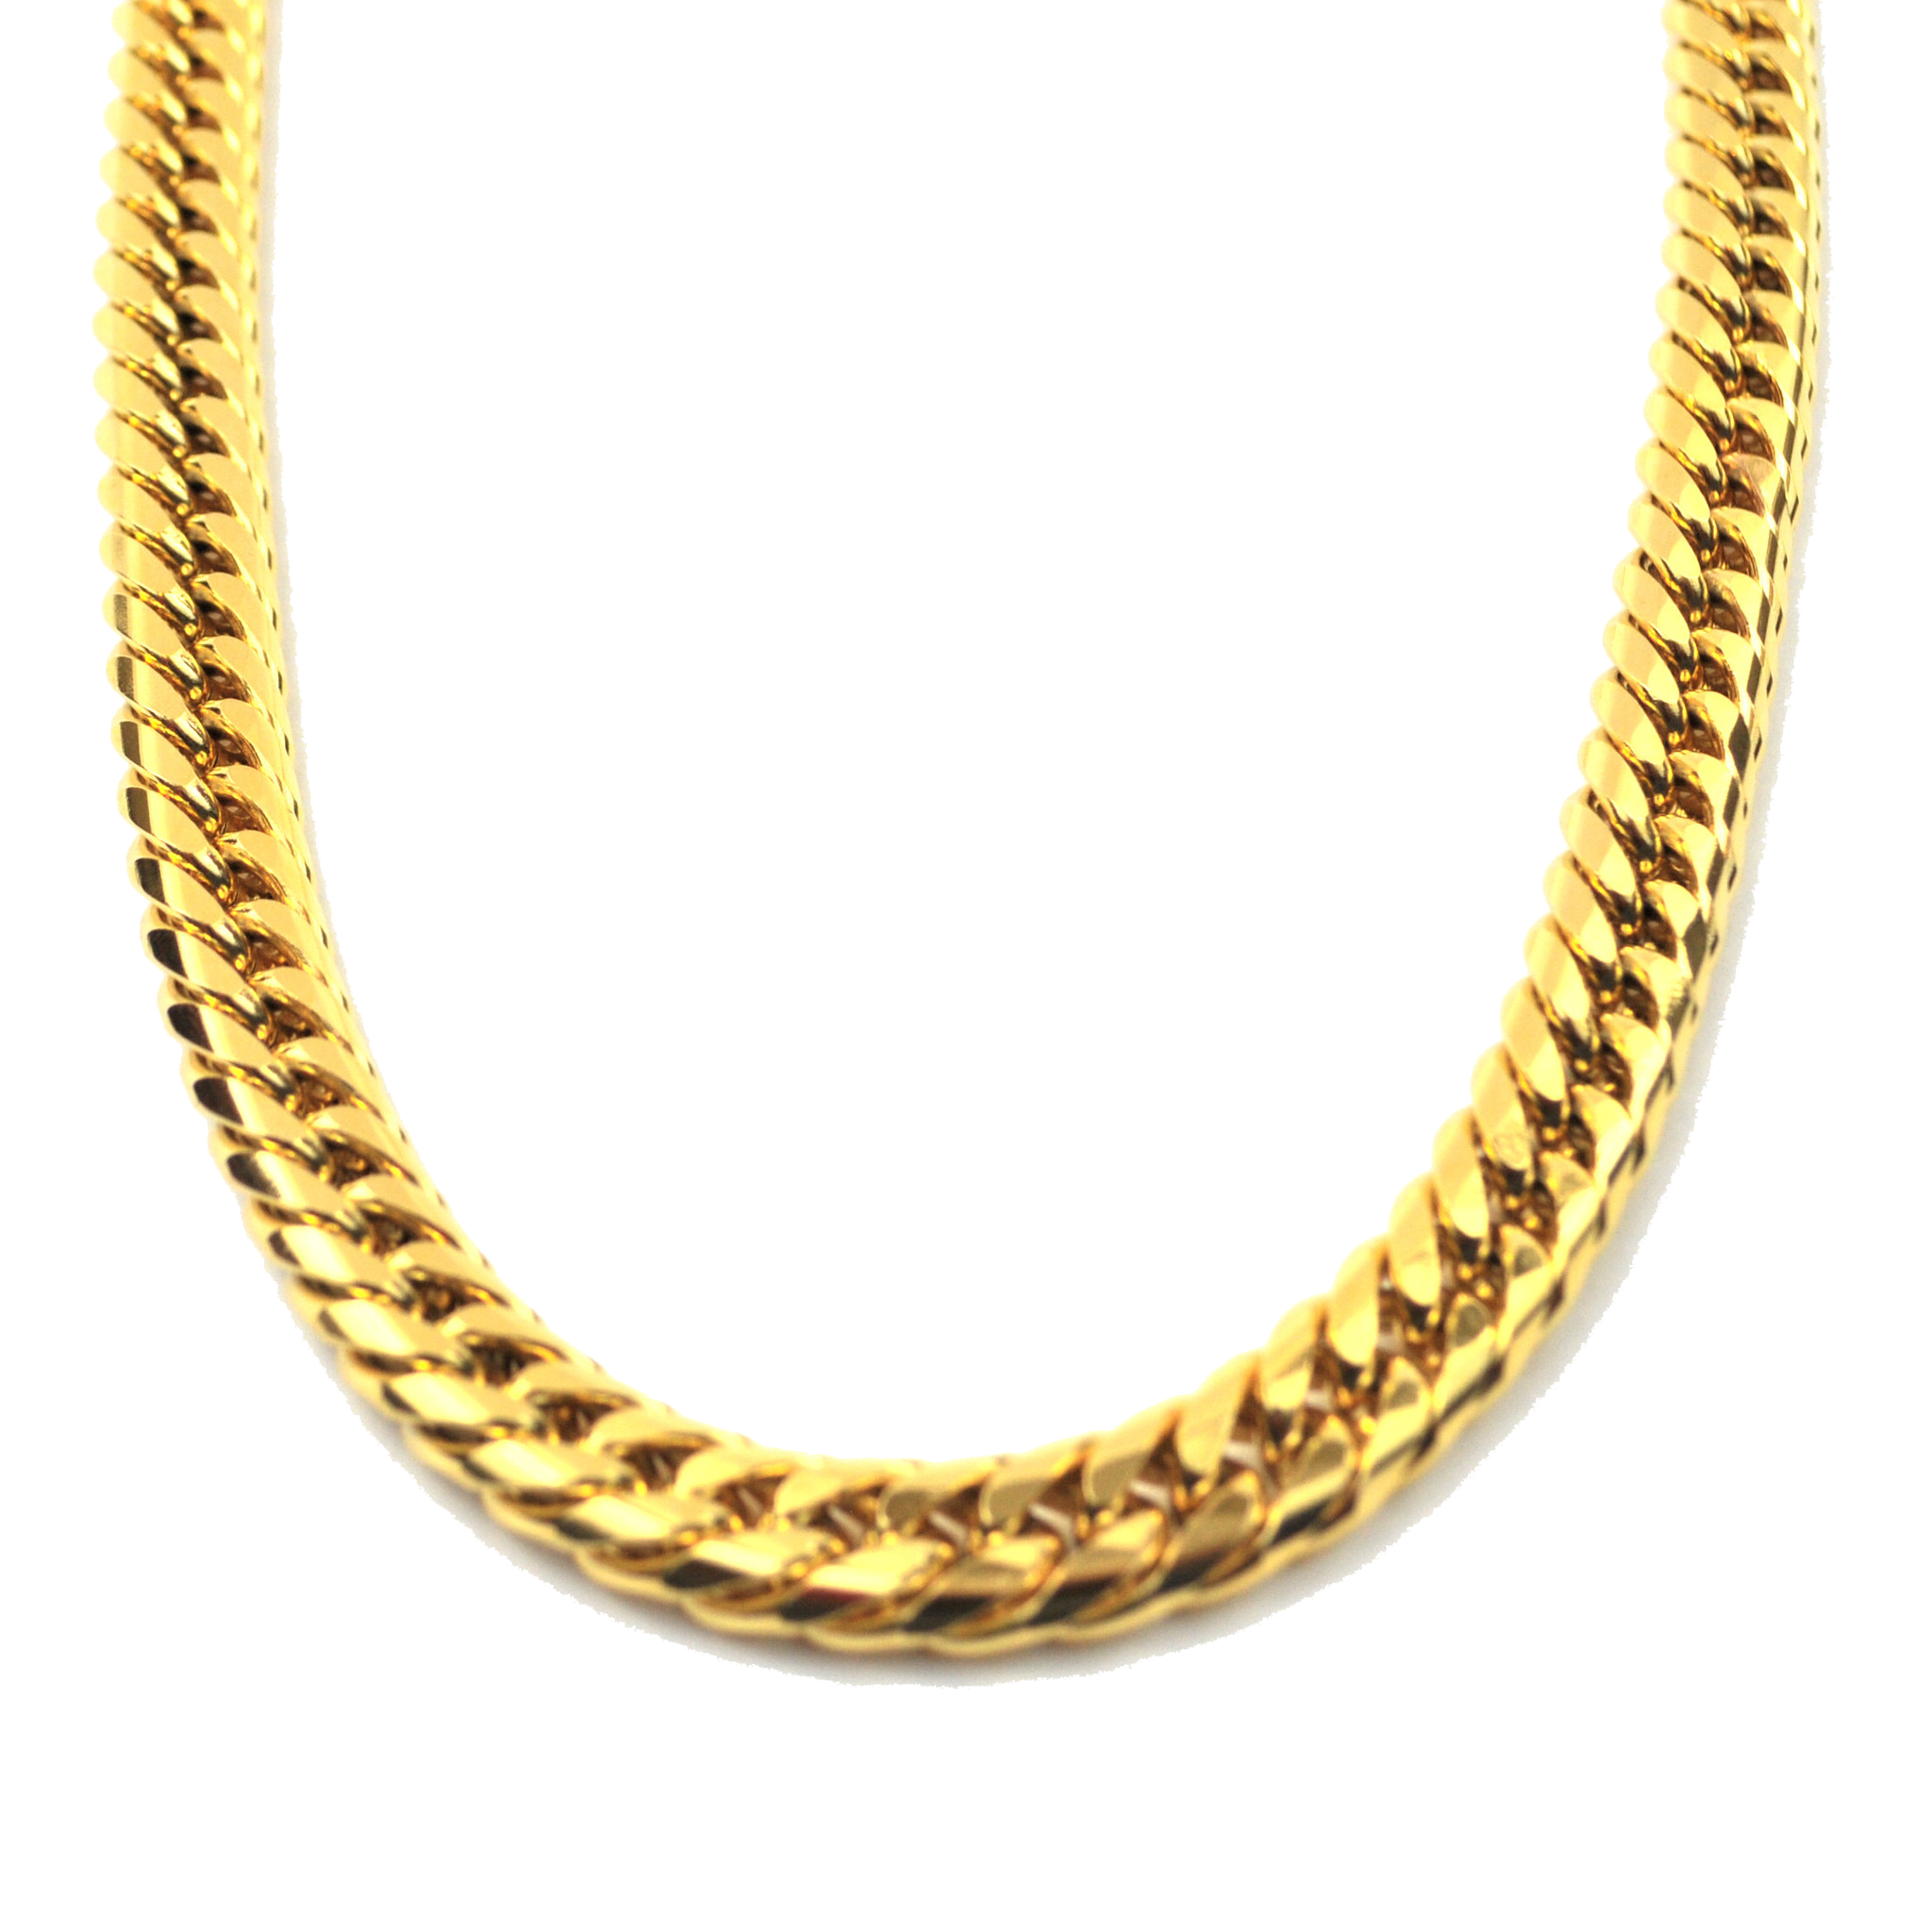 Jewellery Chain PNG Clipart image #42697